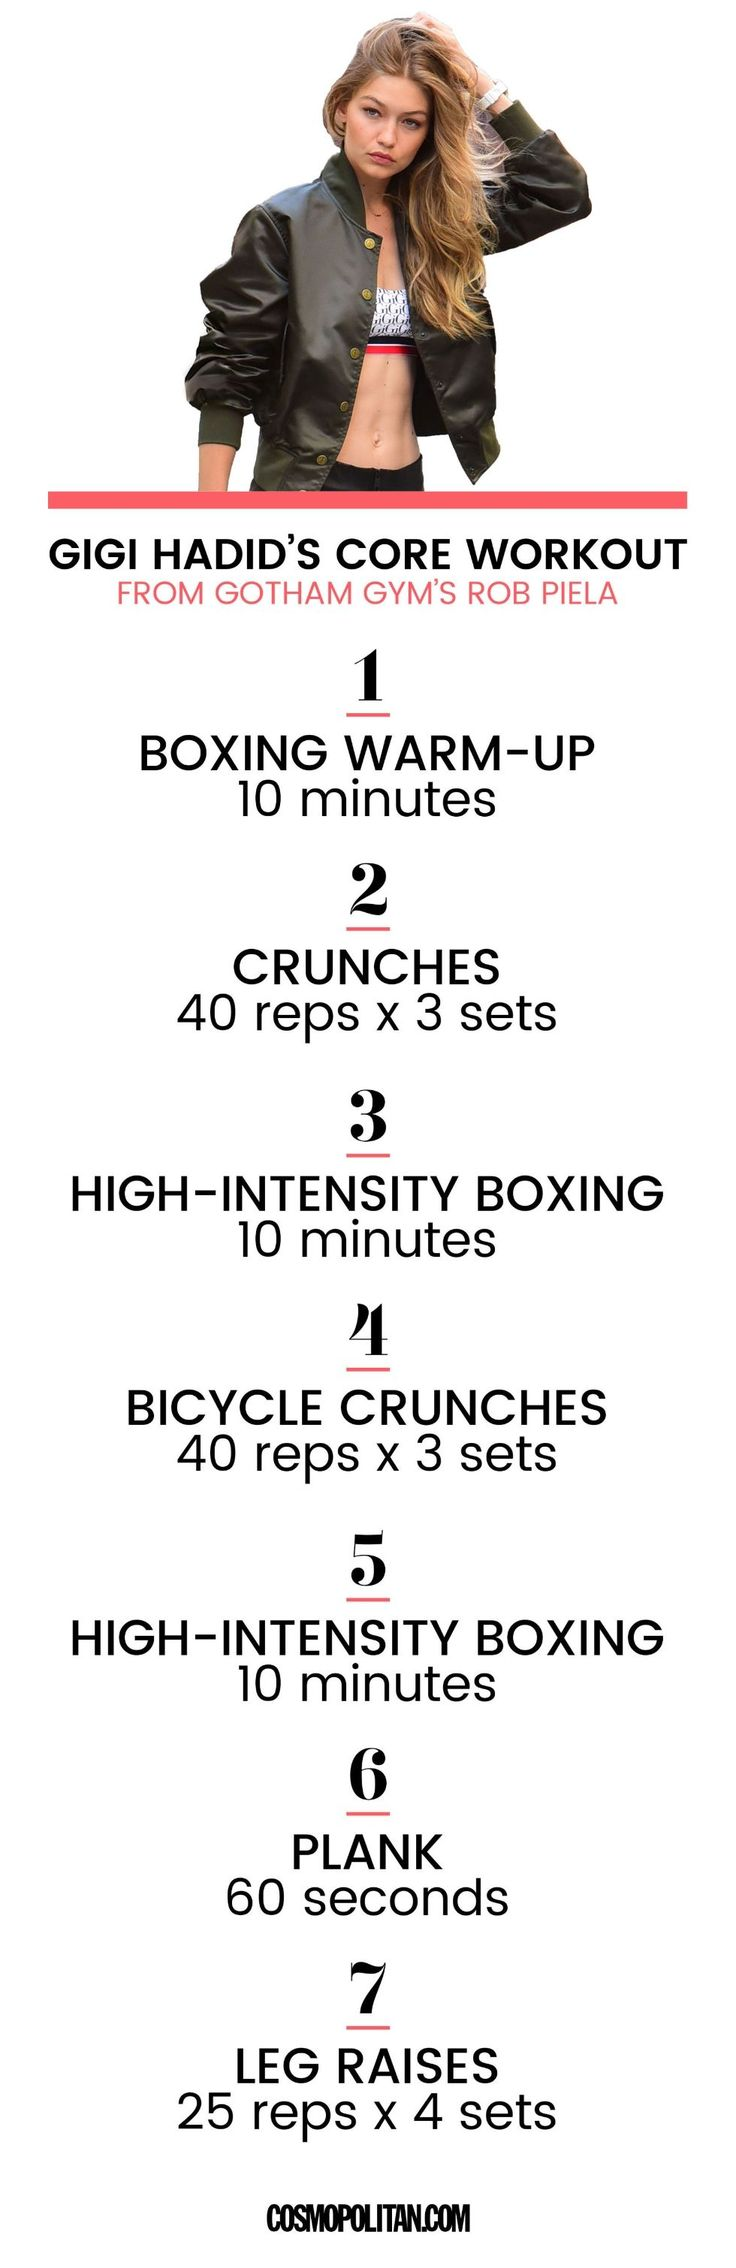 gigi-hadid-core-workout